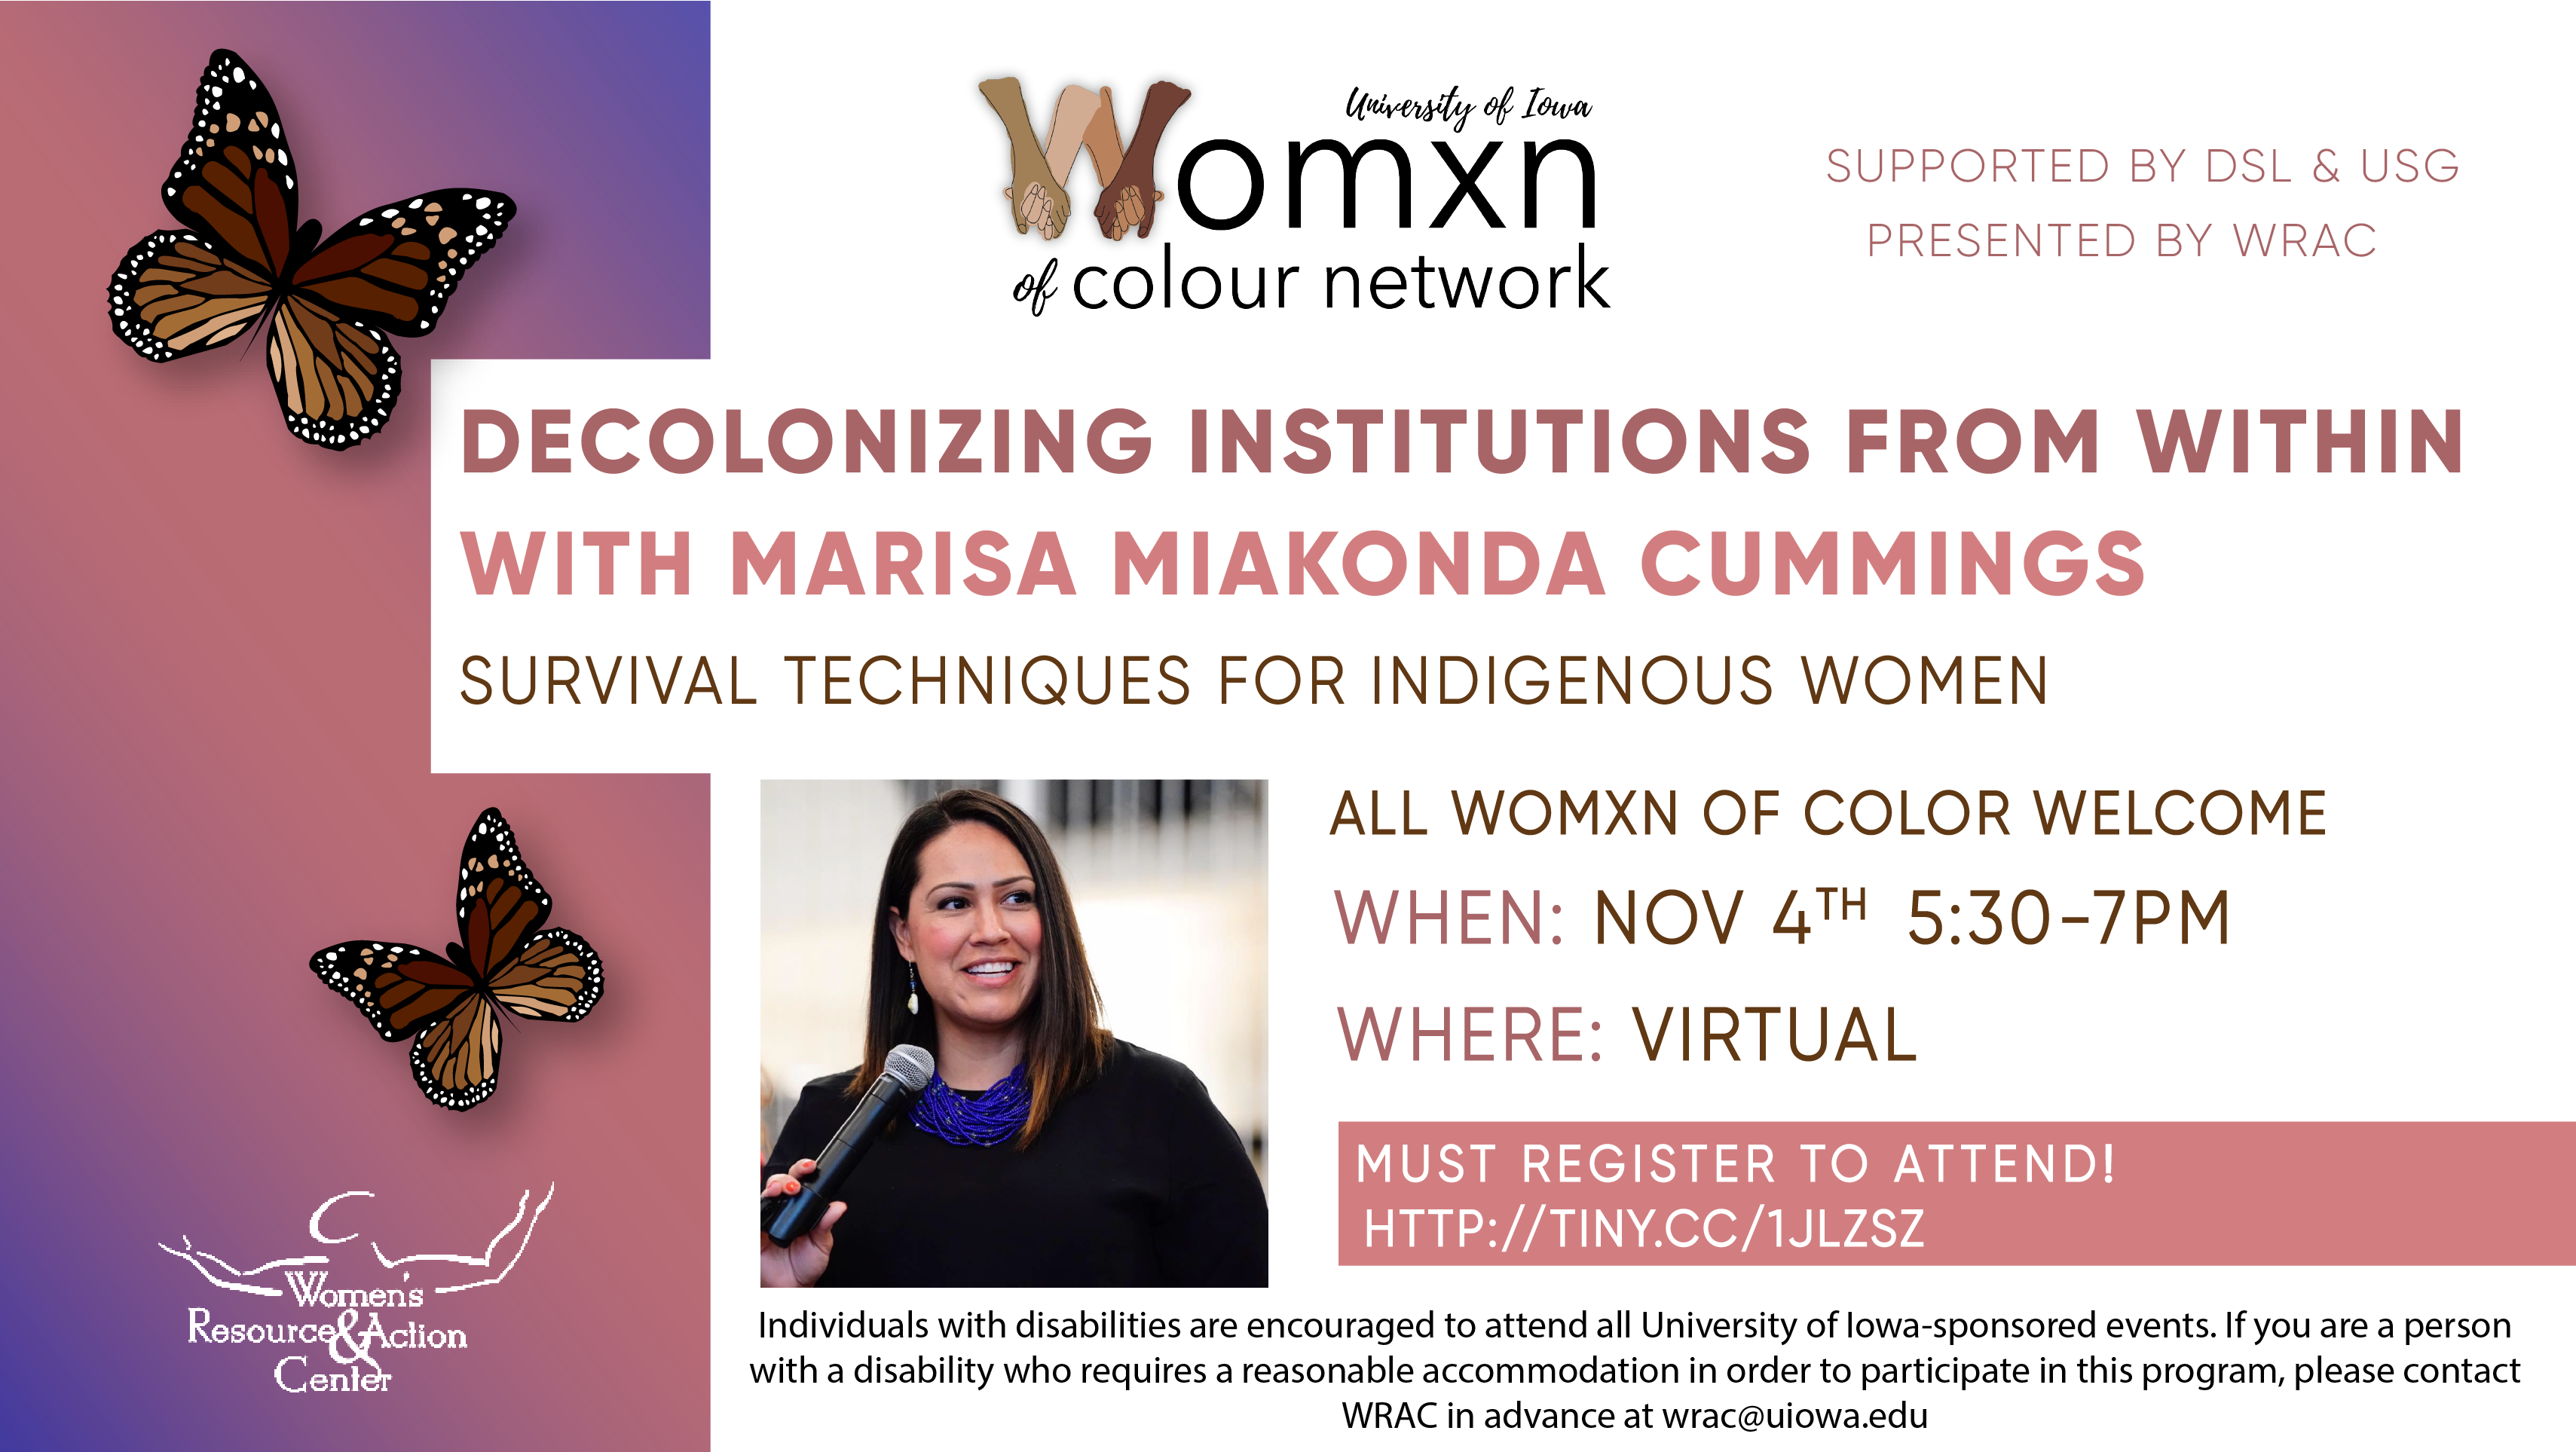 Pink and purple flyer with illustrated monarch butterflies. Women of Color network logo. Text reads: Decolonizing Institutions from within with Marisa Miakonda Cummings. Survival Techniques for Indigenous Women